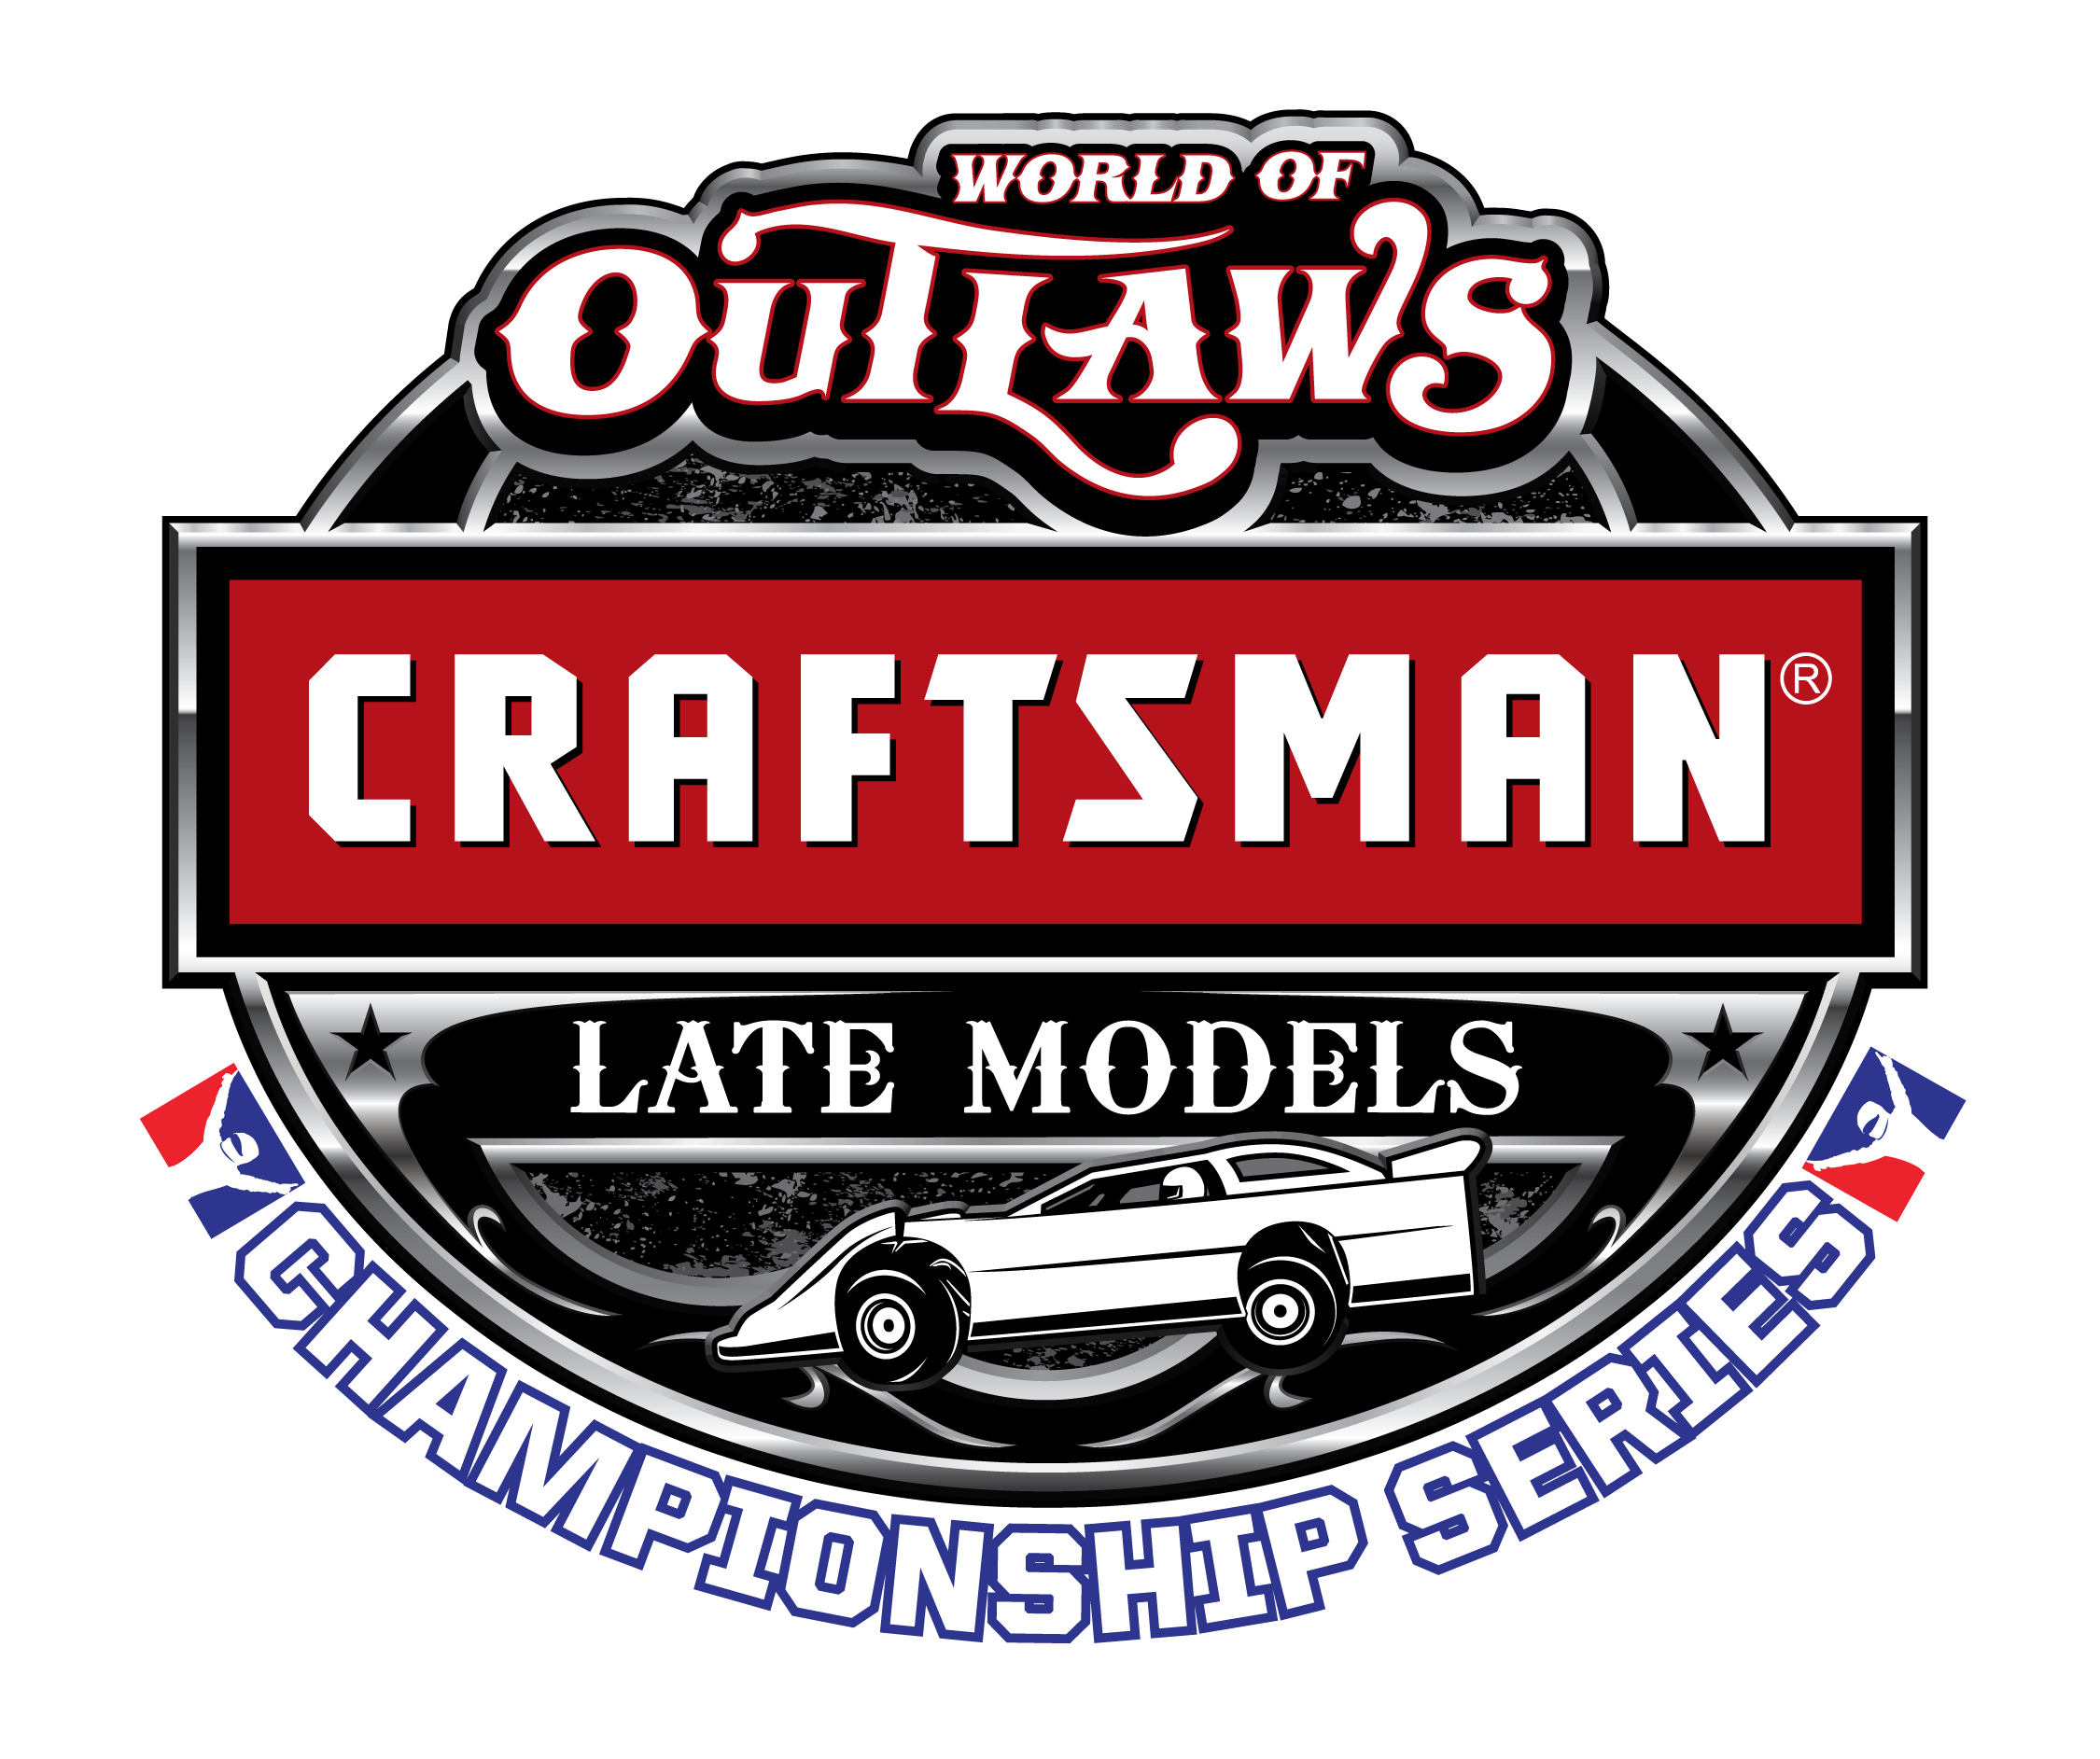 2019 World Of Outlaws Craftsman Late Model Championship Series